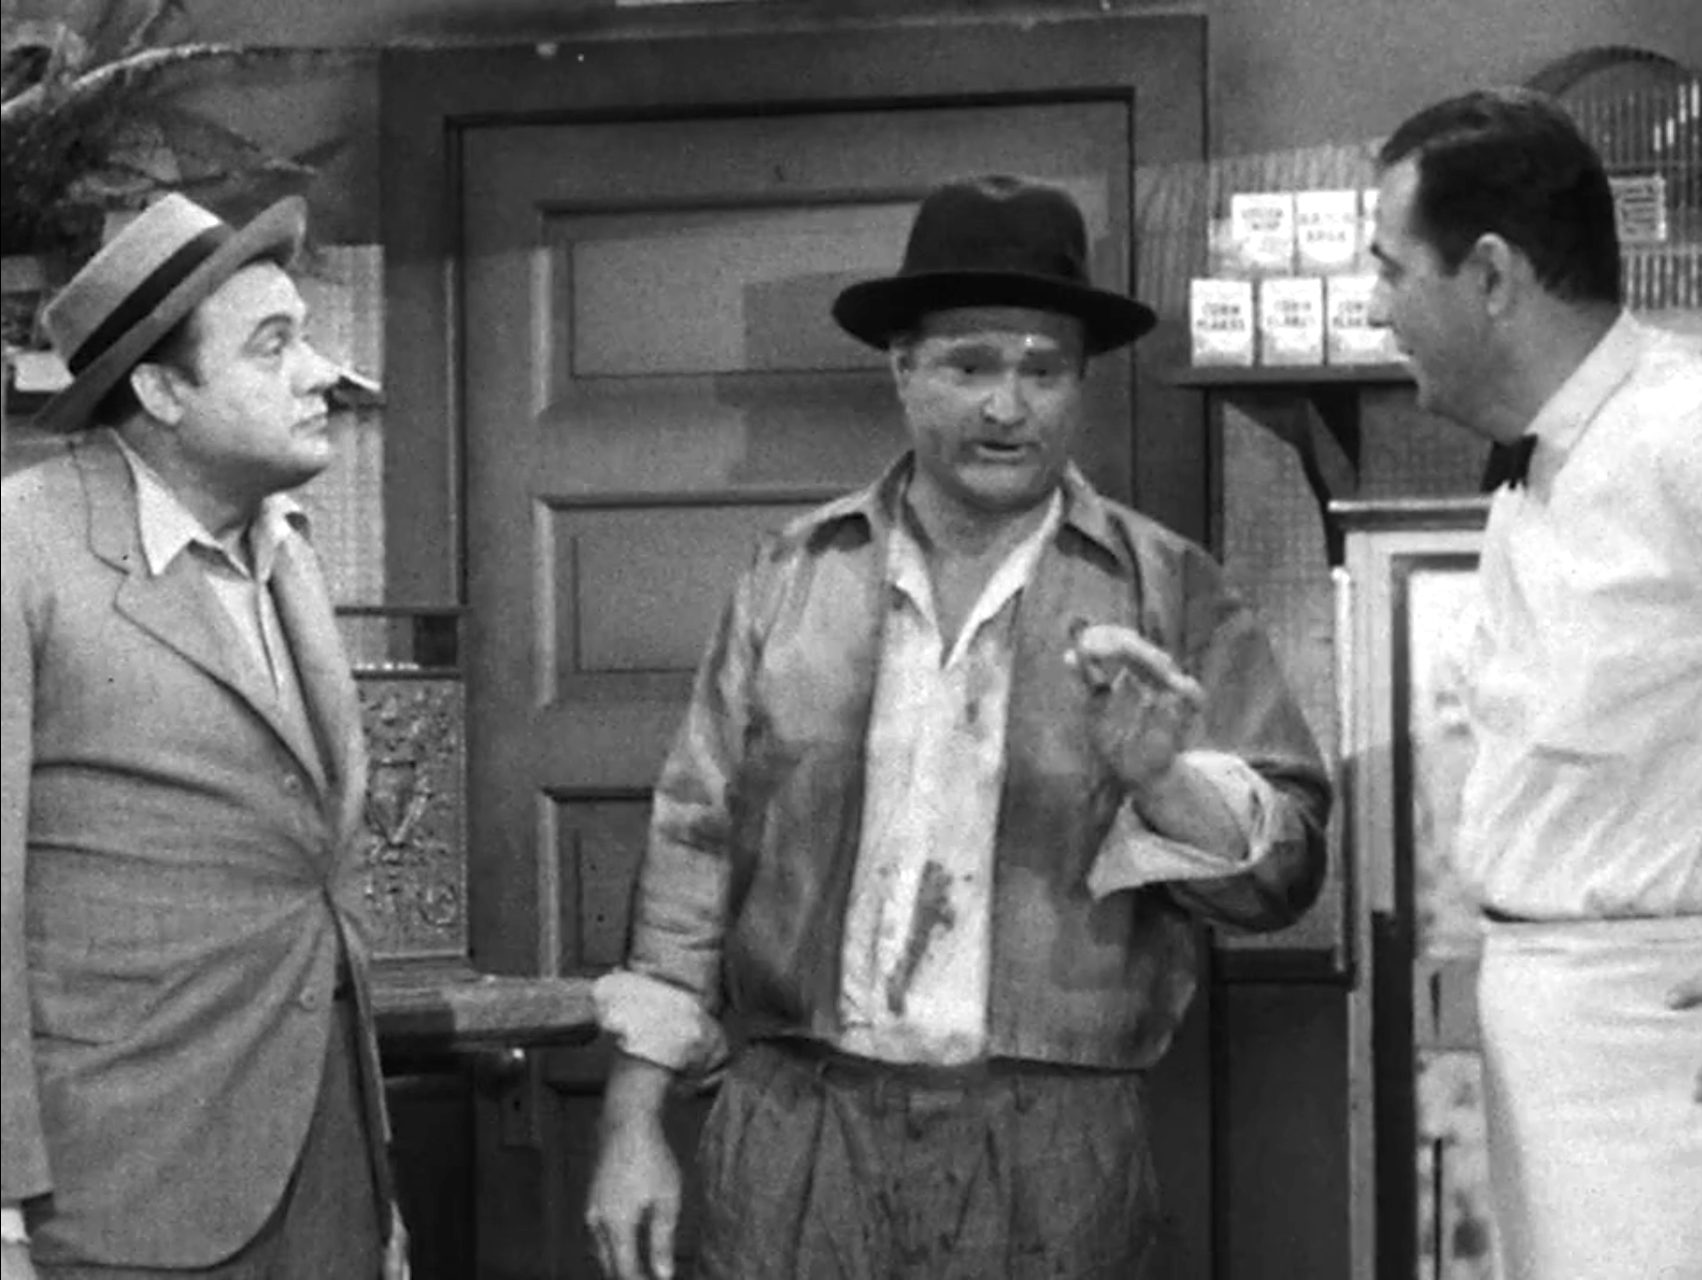 Red Skelton in the Help Wanted sketch